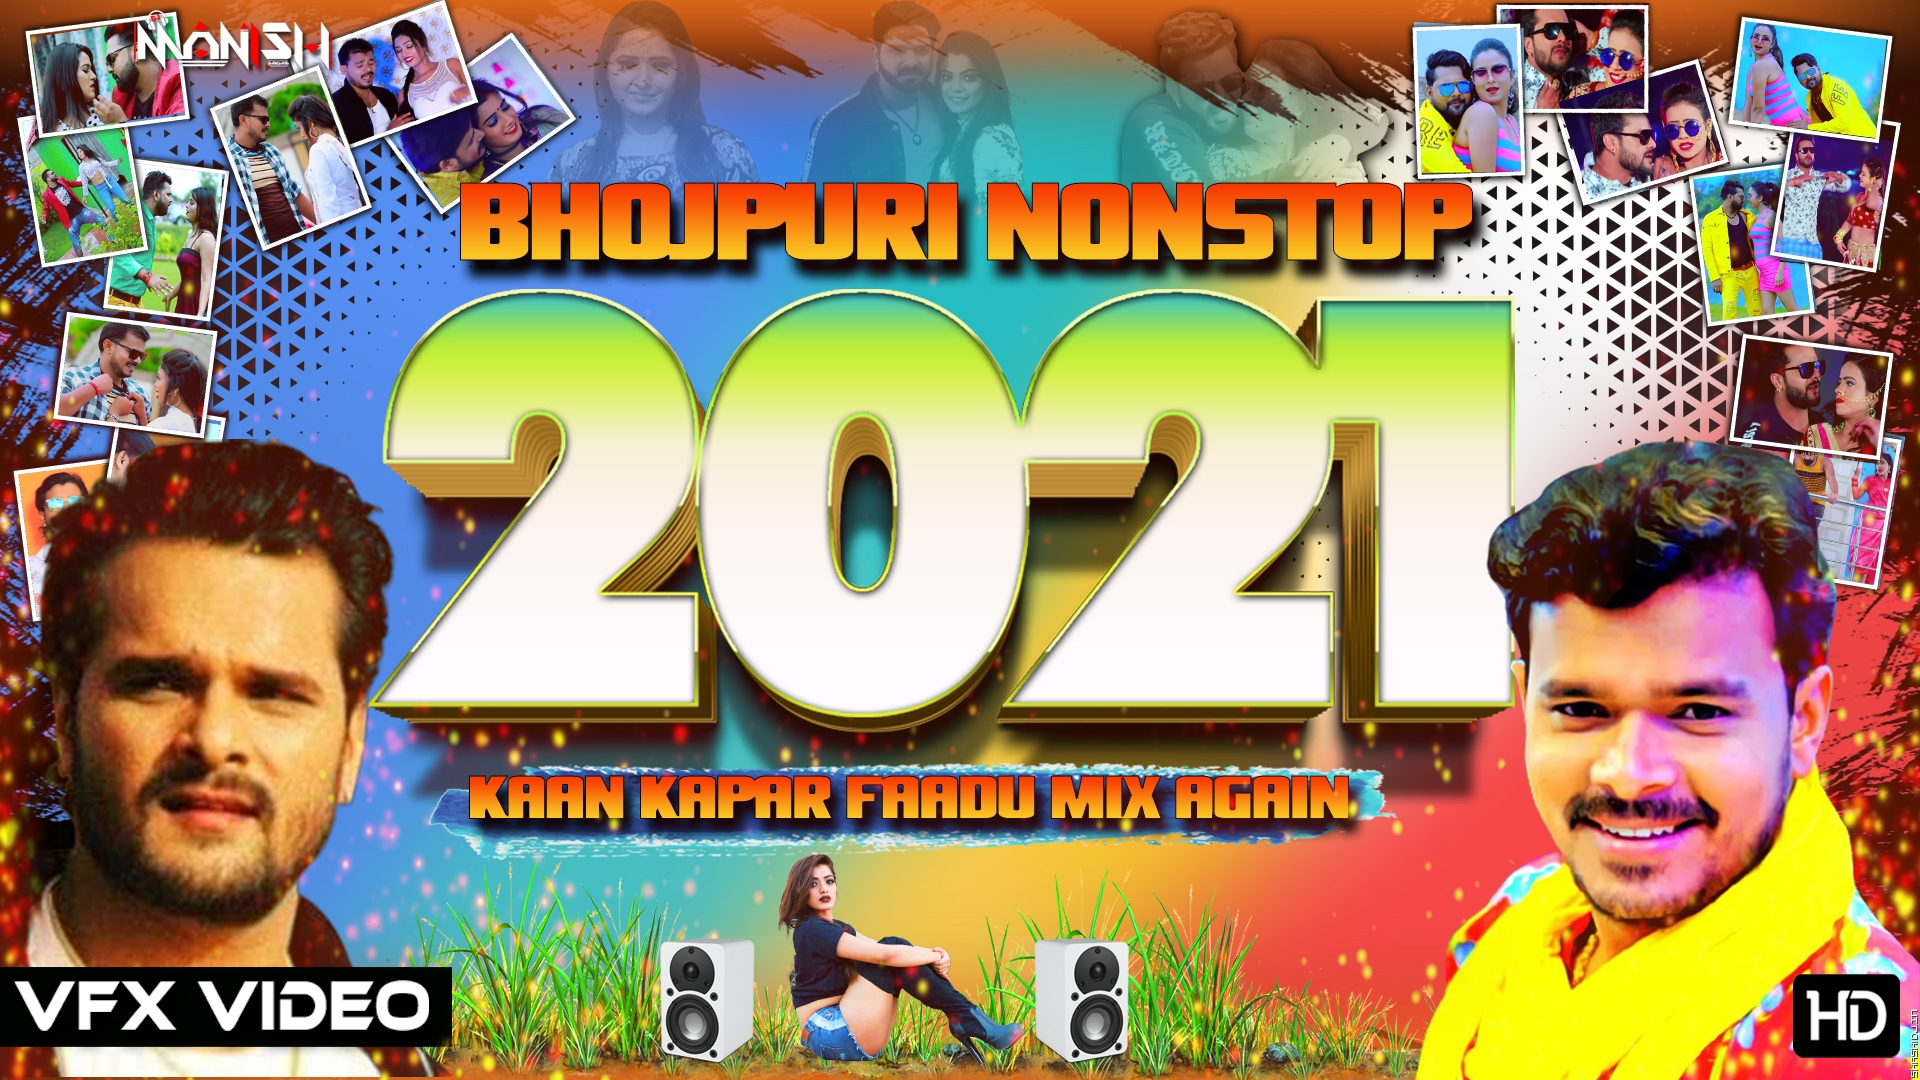 Bhojpuri Nonstop 2021 - Kaan Kaapar Faadu Mix Again Mix By Dj Manish Dhanbad.mp3